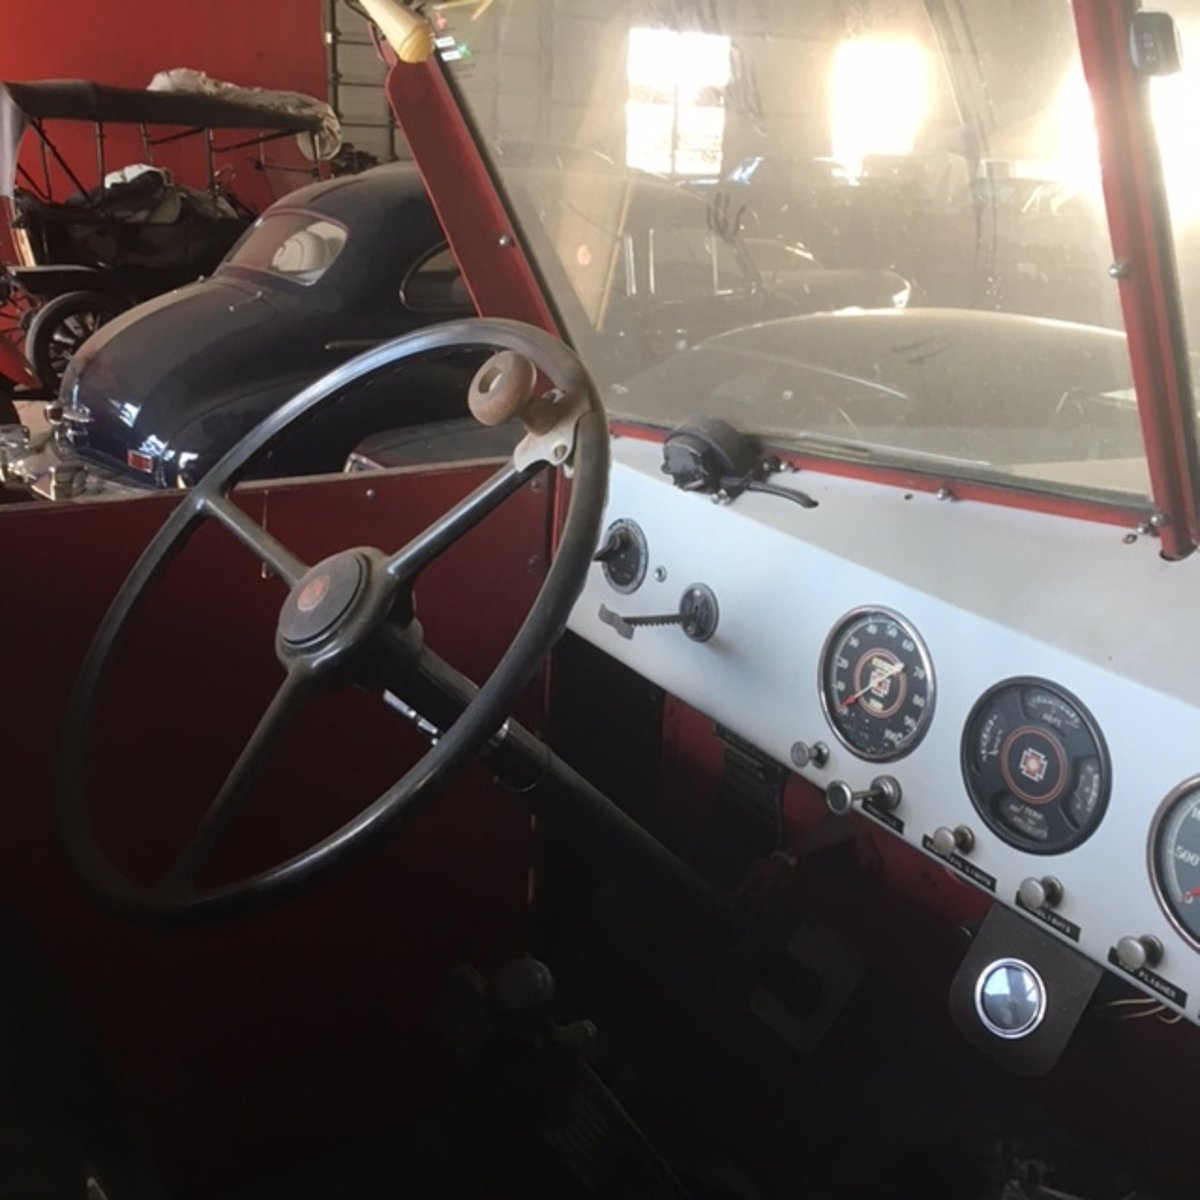 1946 American LaFrance Pumper Fire Truck For Sale (picture 6 of 6)